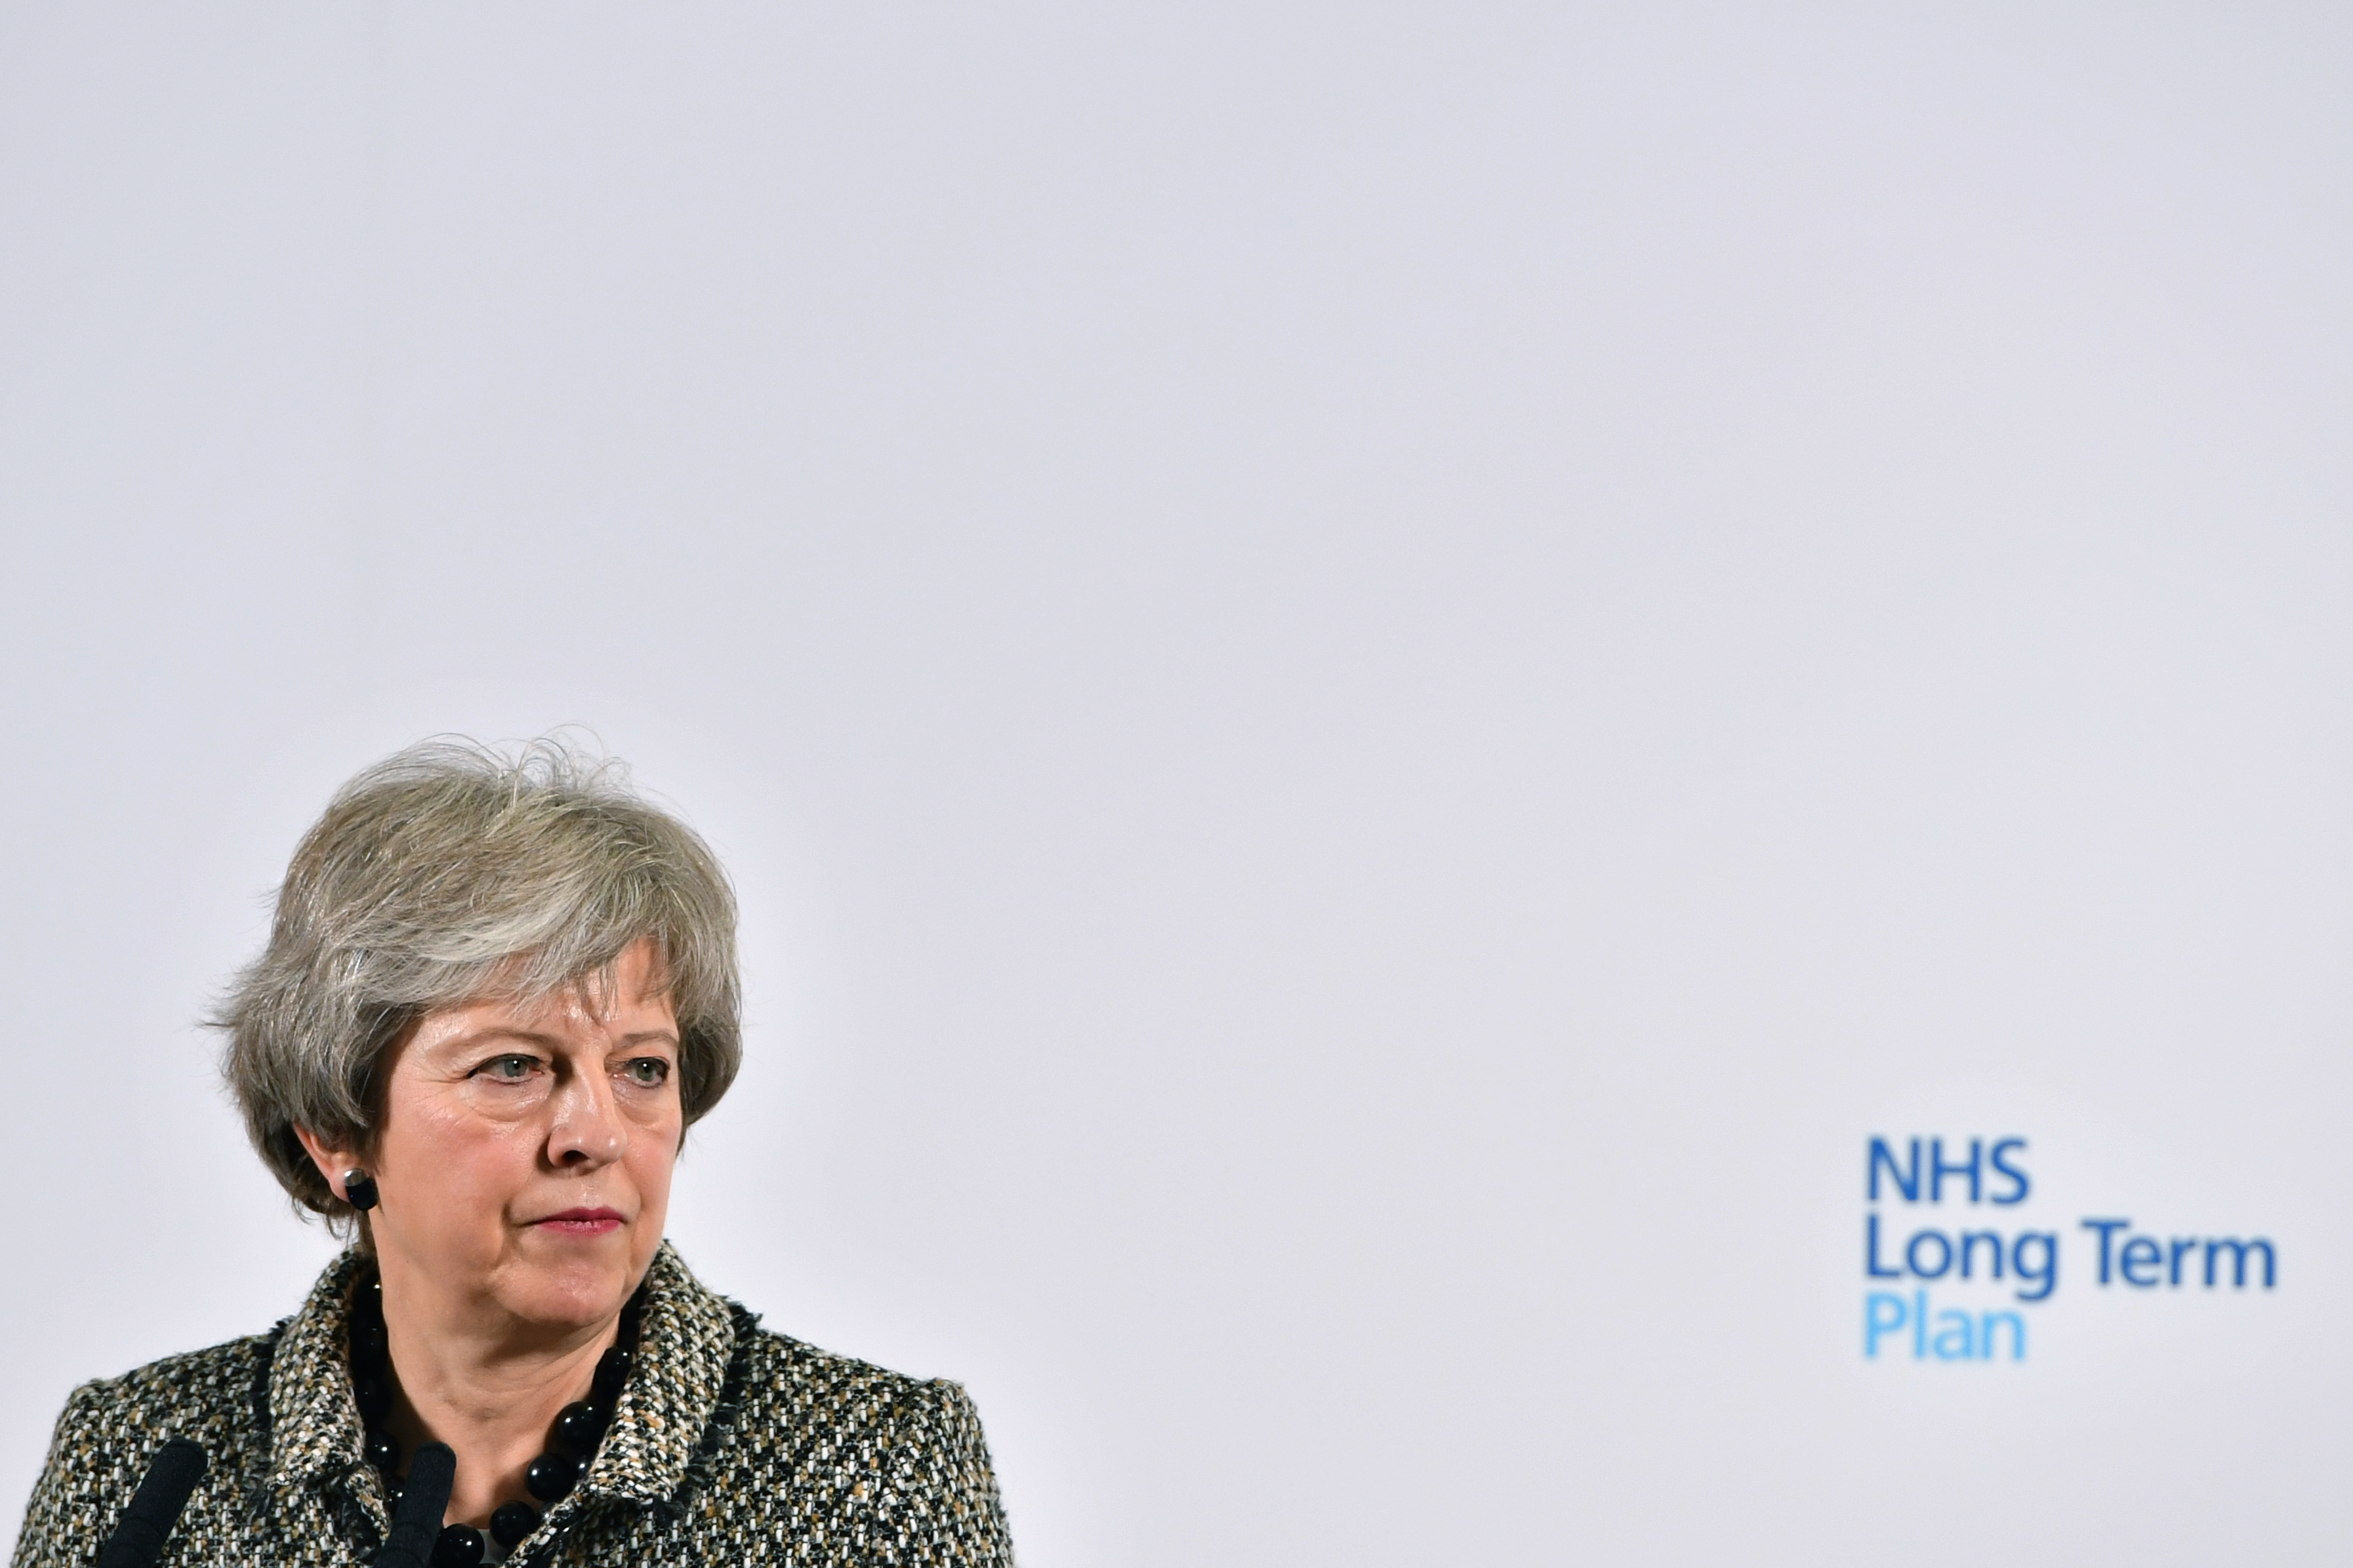 Theresa May lost the Brexit vote because Brexit was a lie